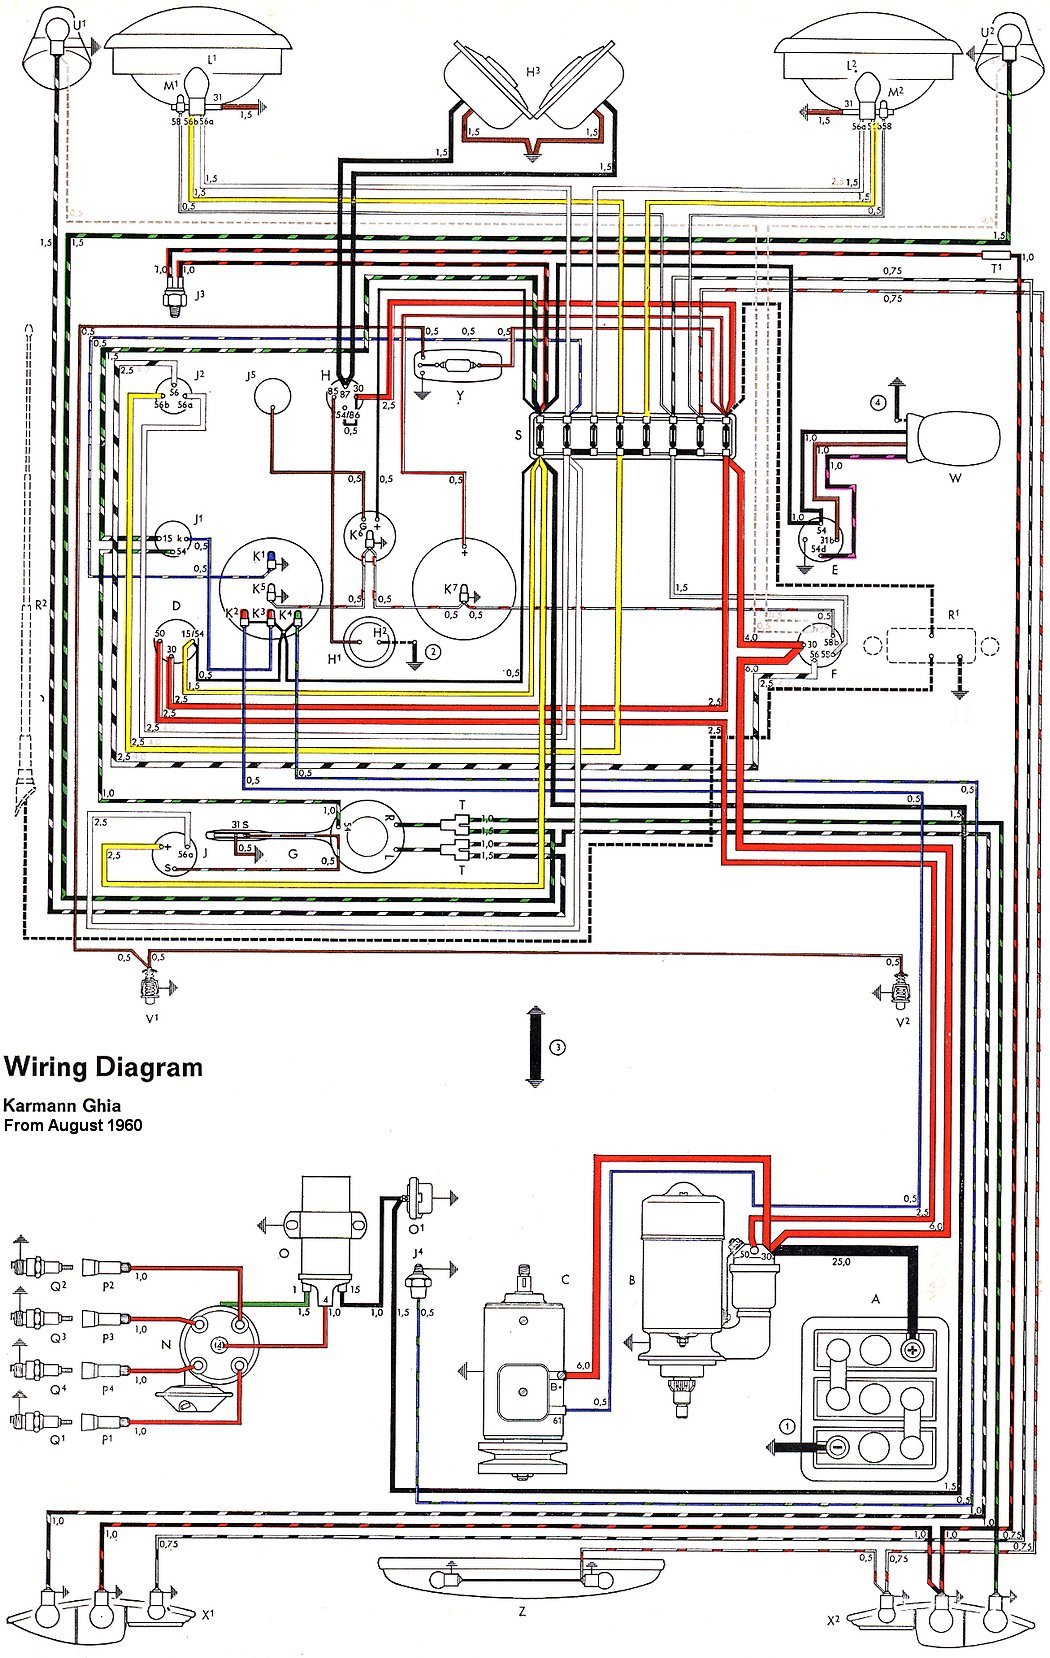 TheSamba.com :: Karmann Ghia Wiring Diagrams